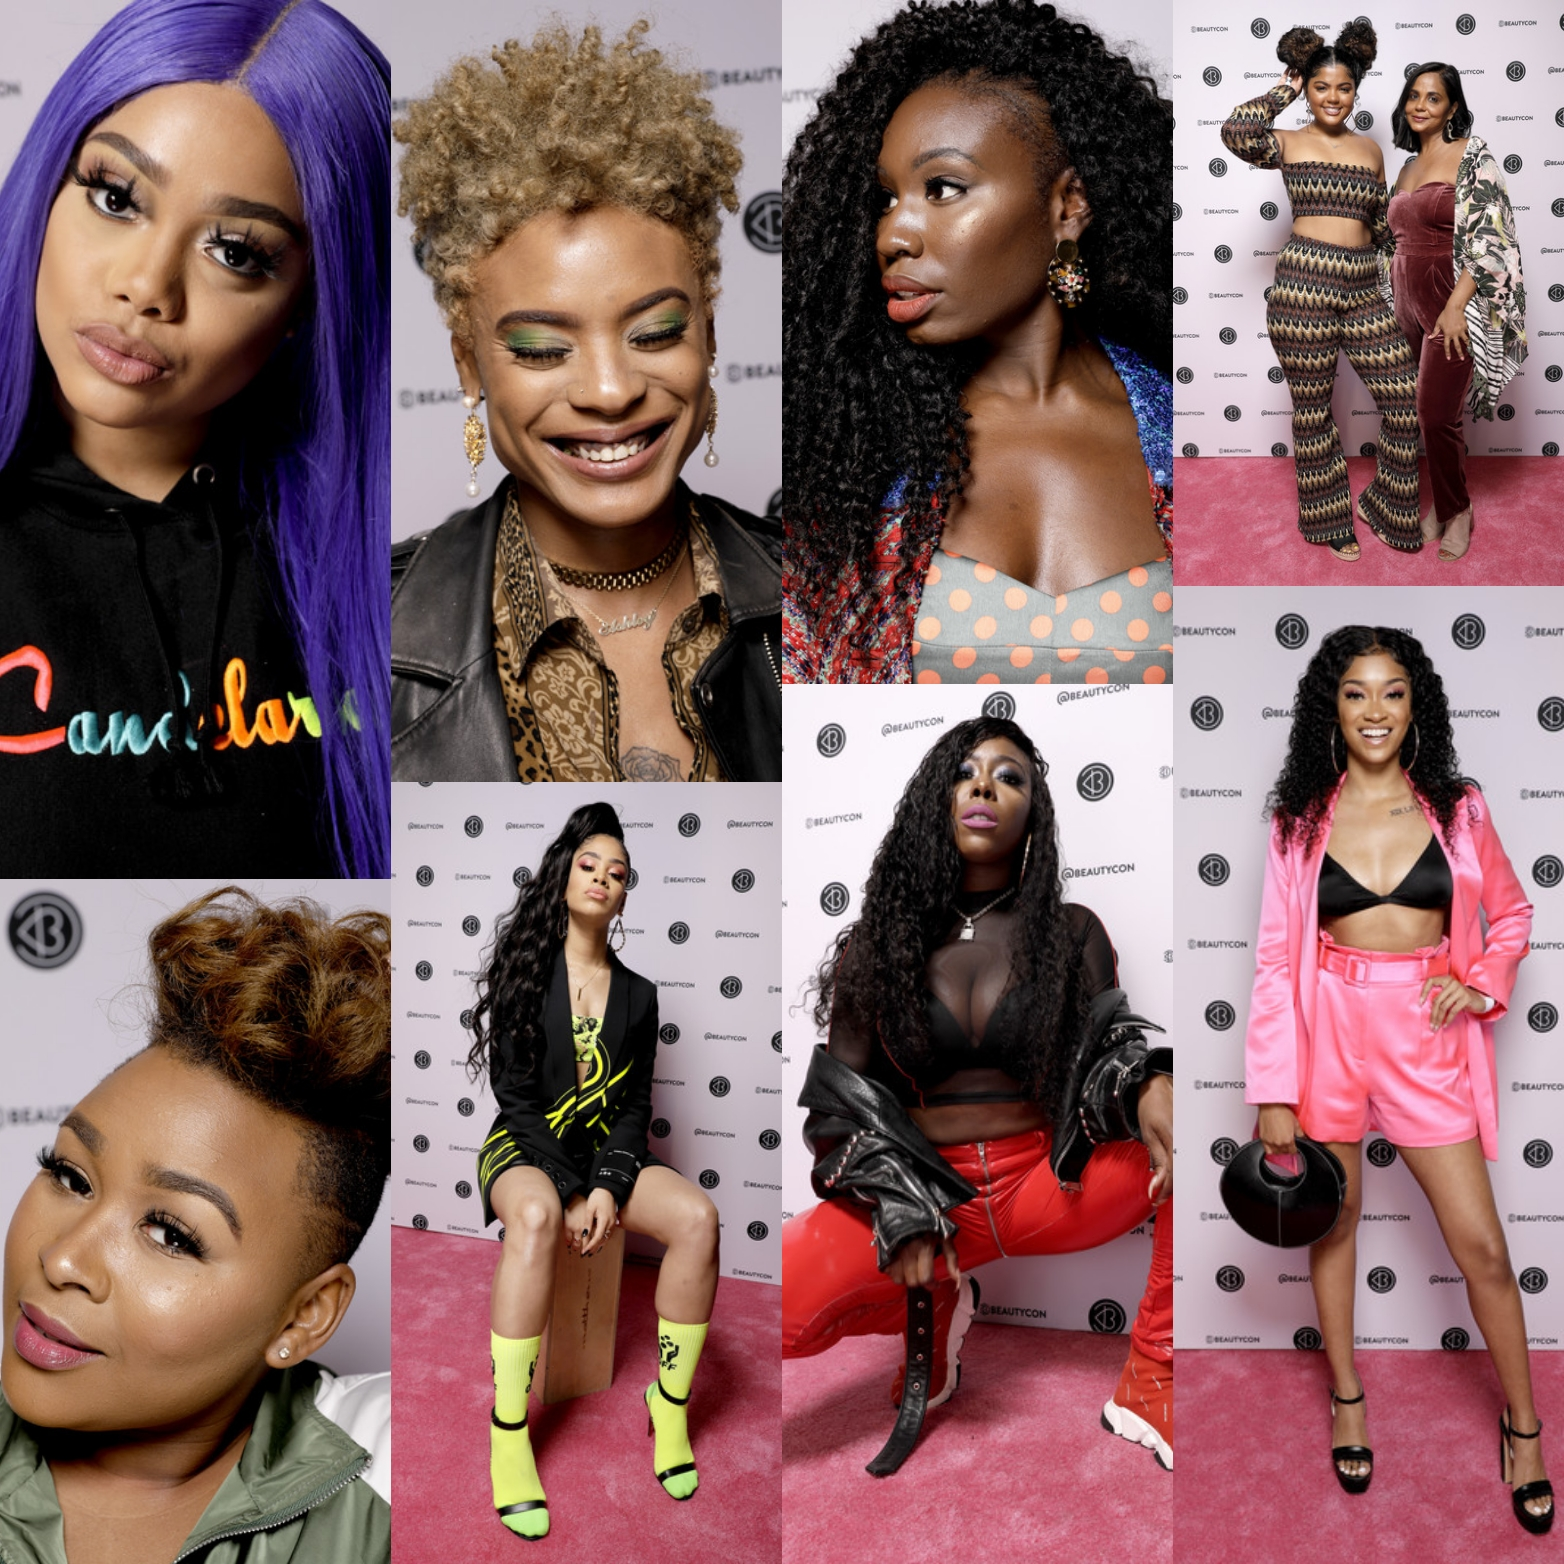 BEAUTYCON NEW YORK 2019 GUESTS DAY 2 COLLAGE.jpg